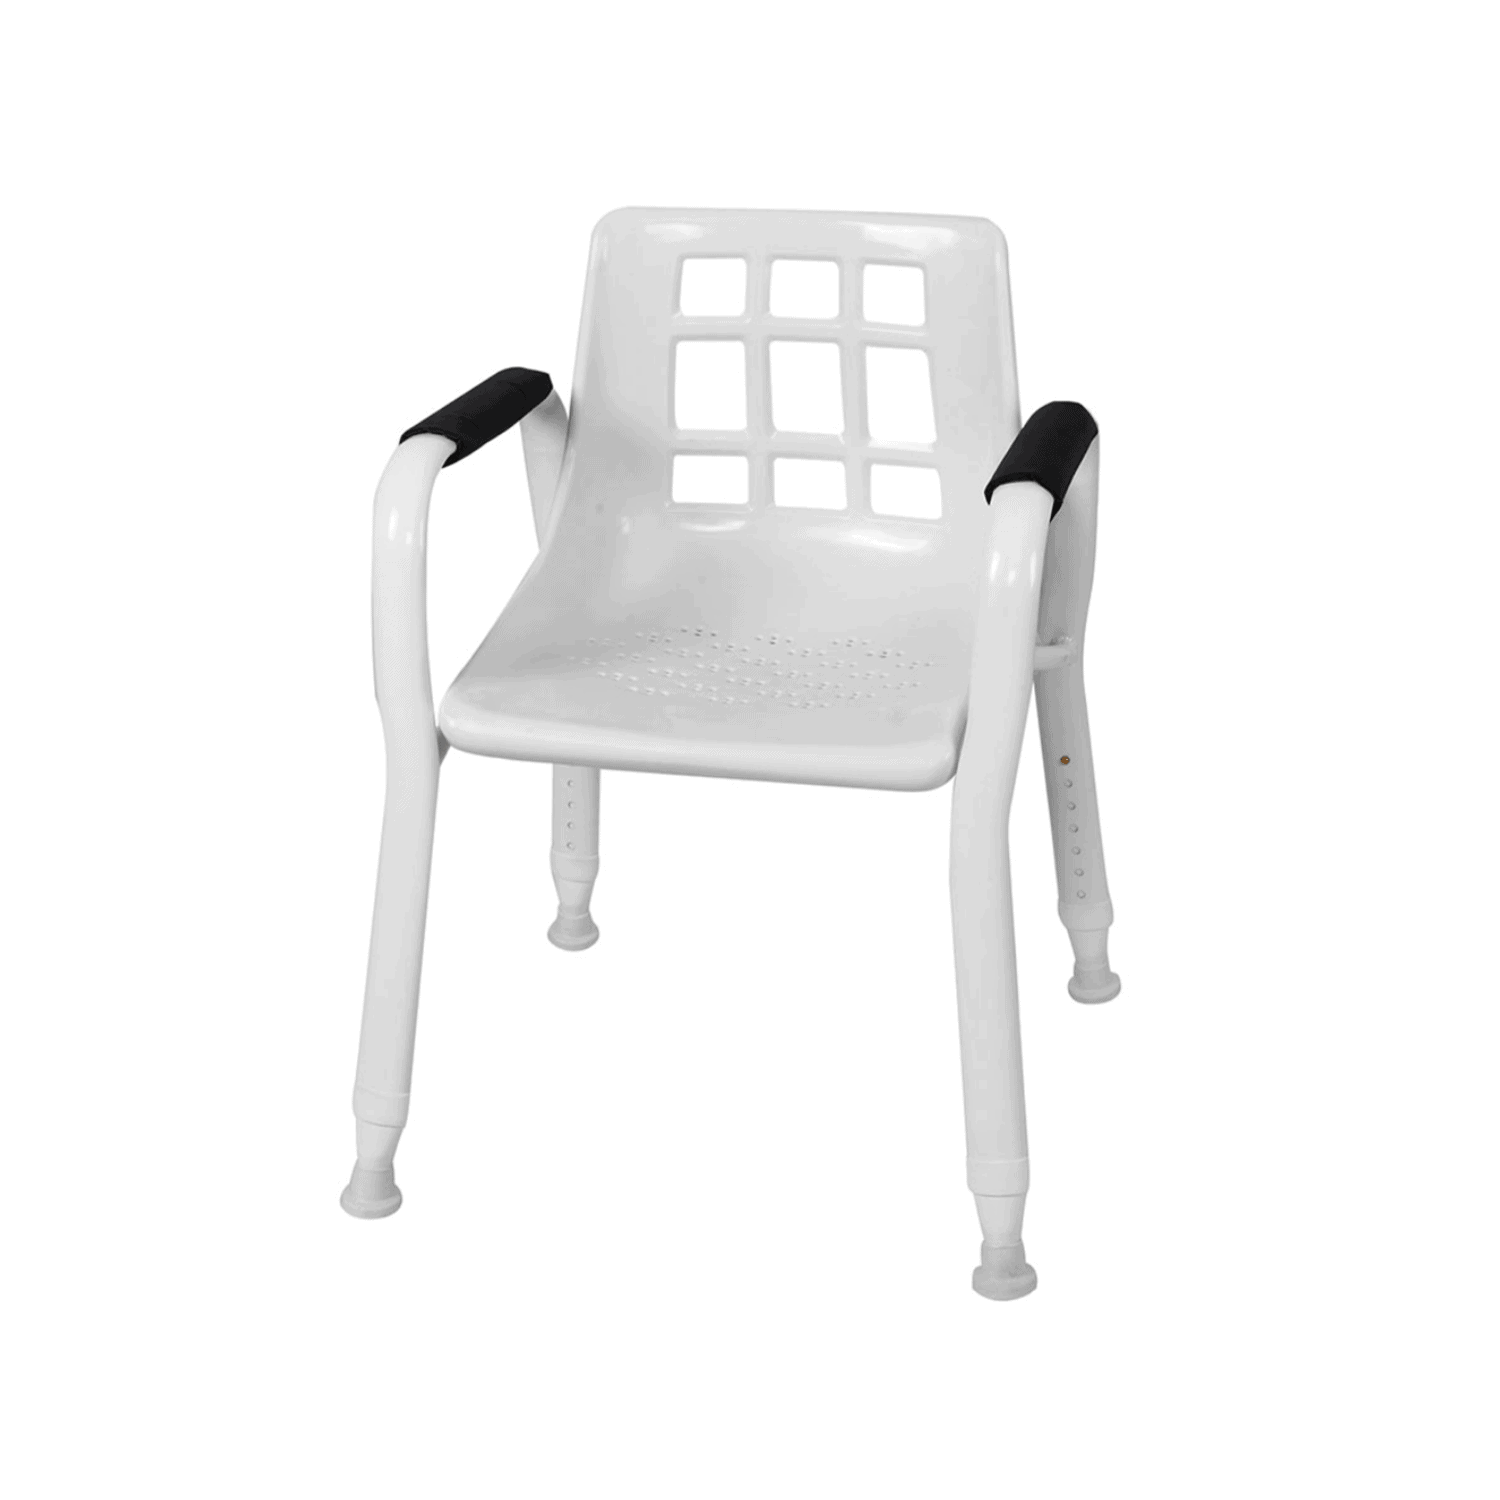 Freedom Oval Tube HD Shower Chair – 200kg Specifications